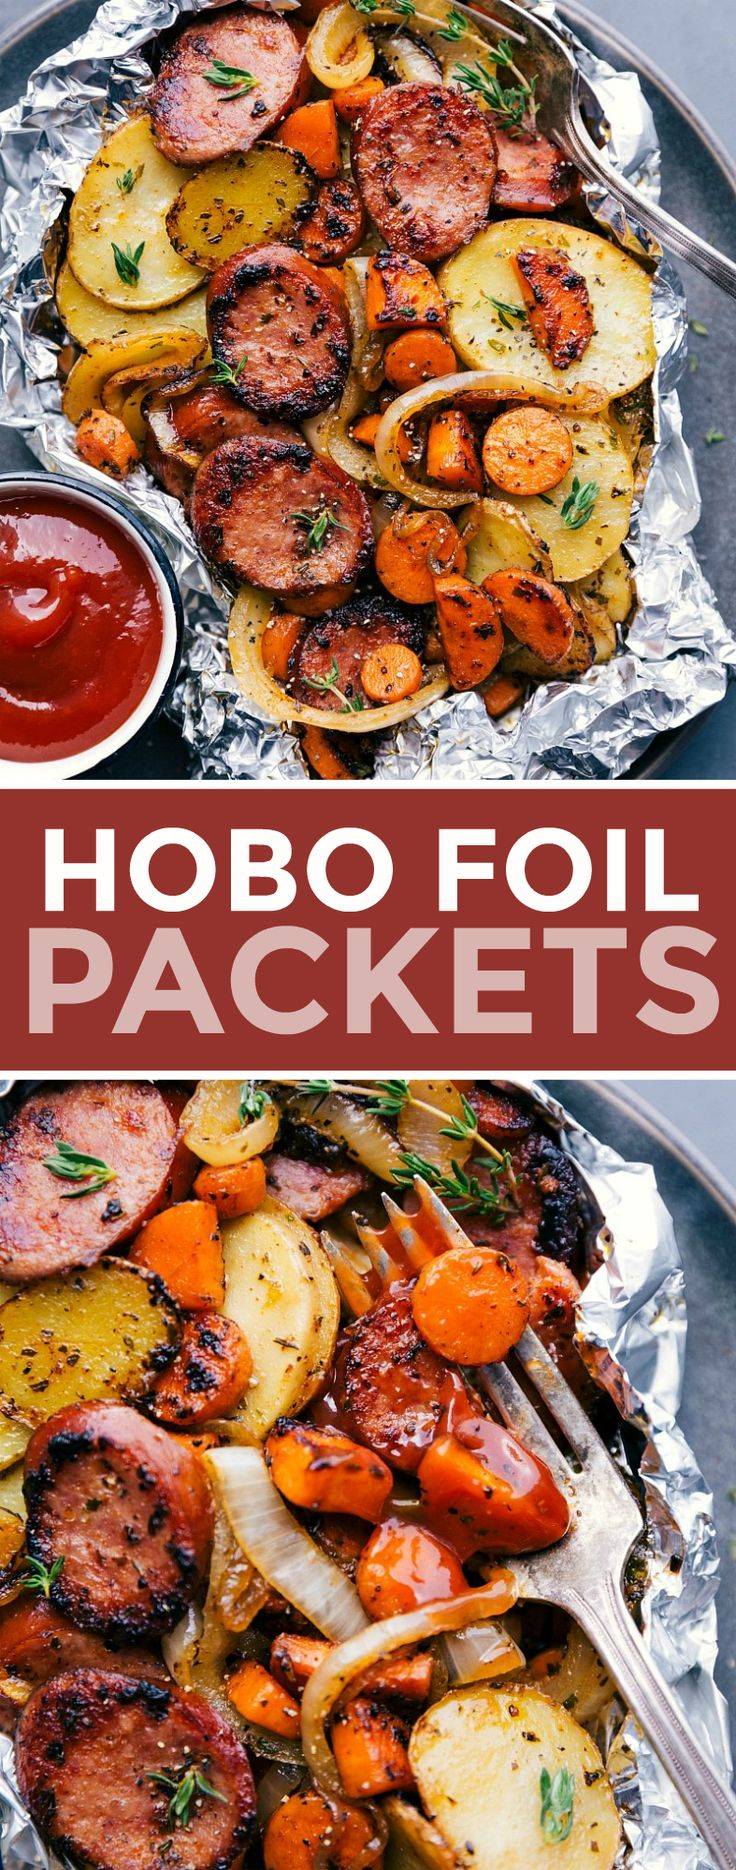 Hobo Foil Packets in 2020 | Camping recipes dinner, Summer ...